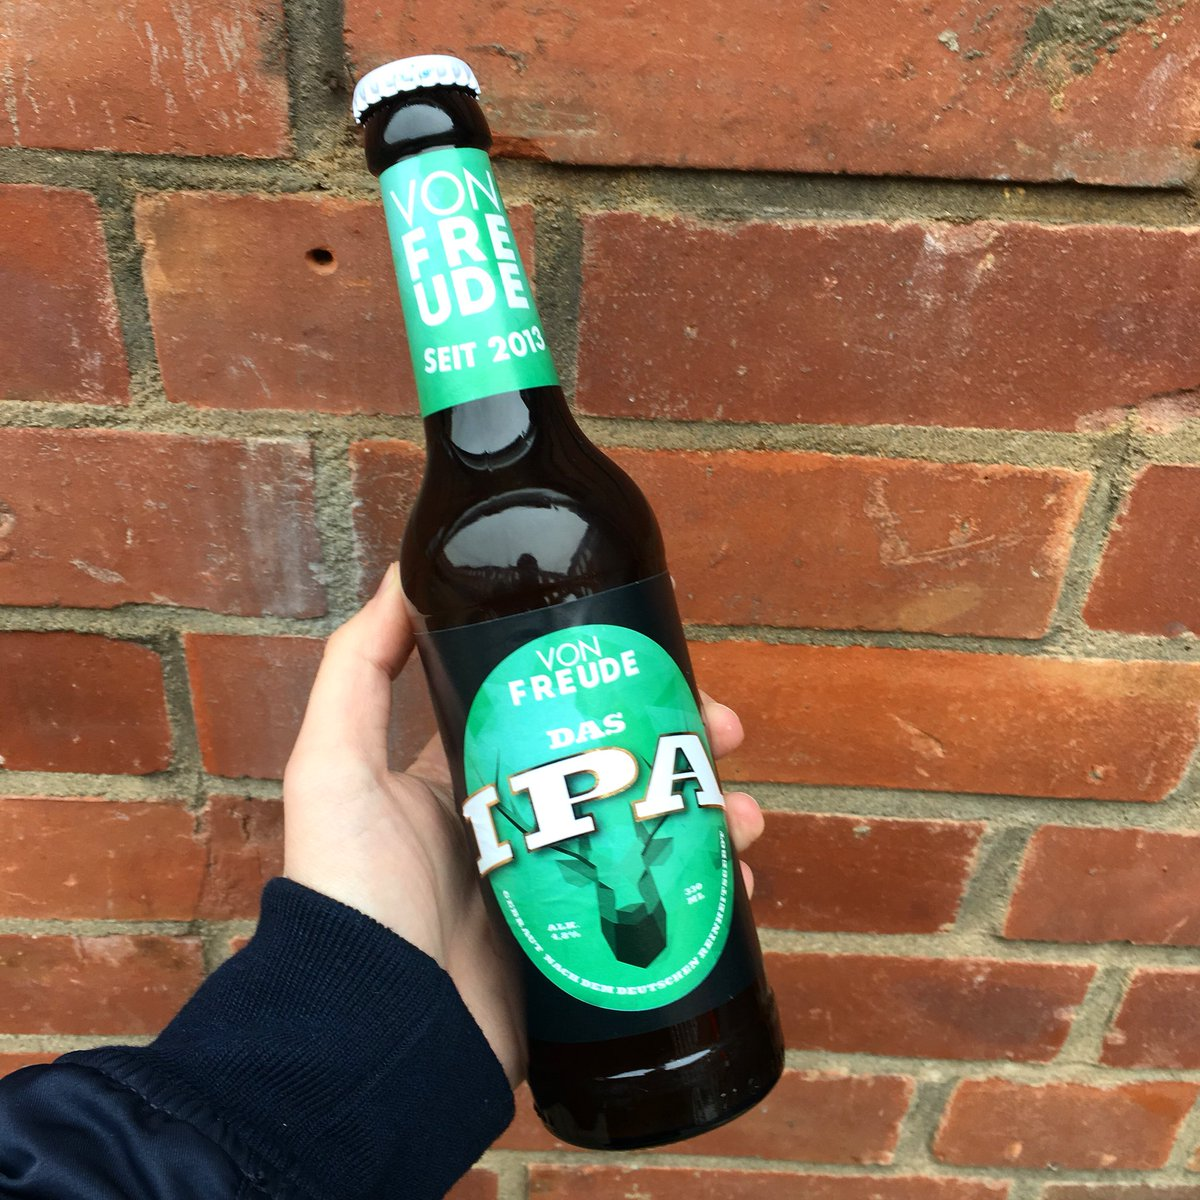 Sad about #ITASWE or happy about it? In both cases, our cool #IPA helps. https://t.co/FZcj5q8XEd